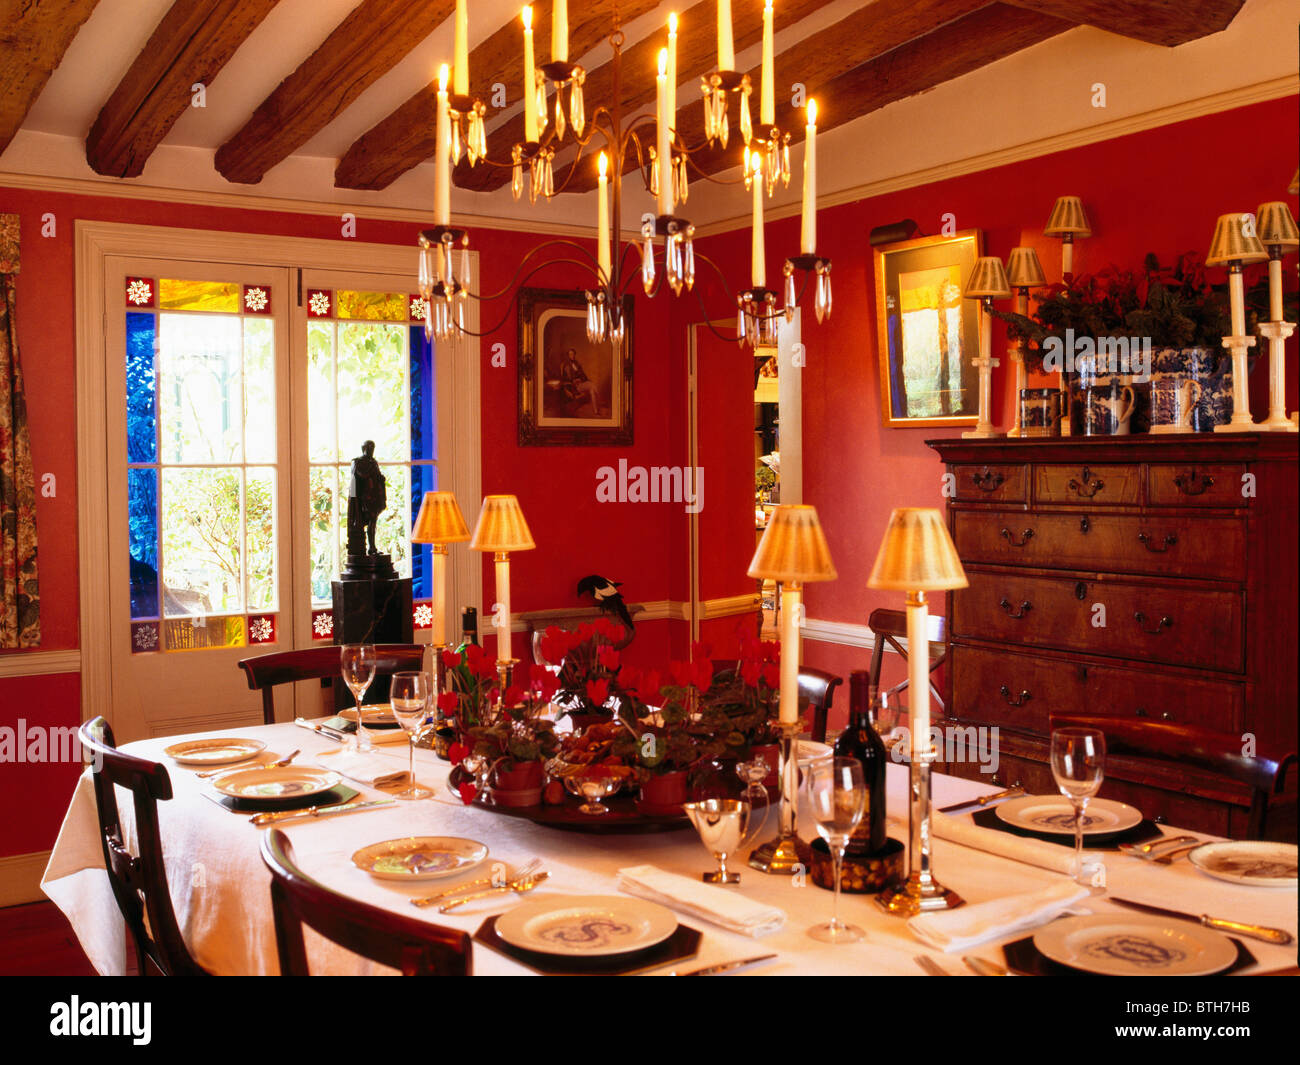 Phenomenal Lighted Candles In Candle Chandelier Above Table Set For Download Free Architecture Designs Crovemadebymaigaardcom